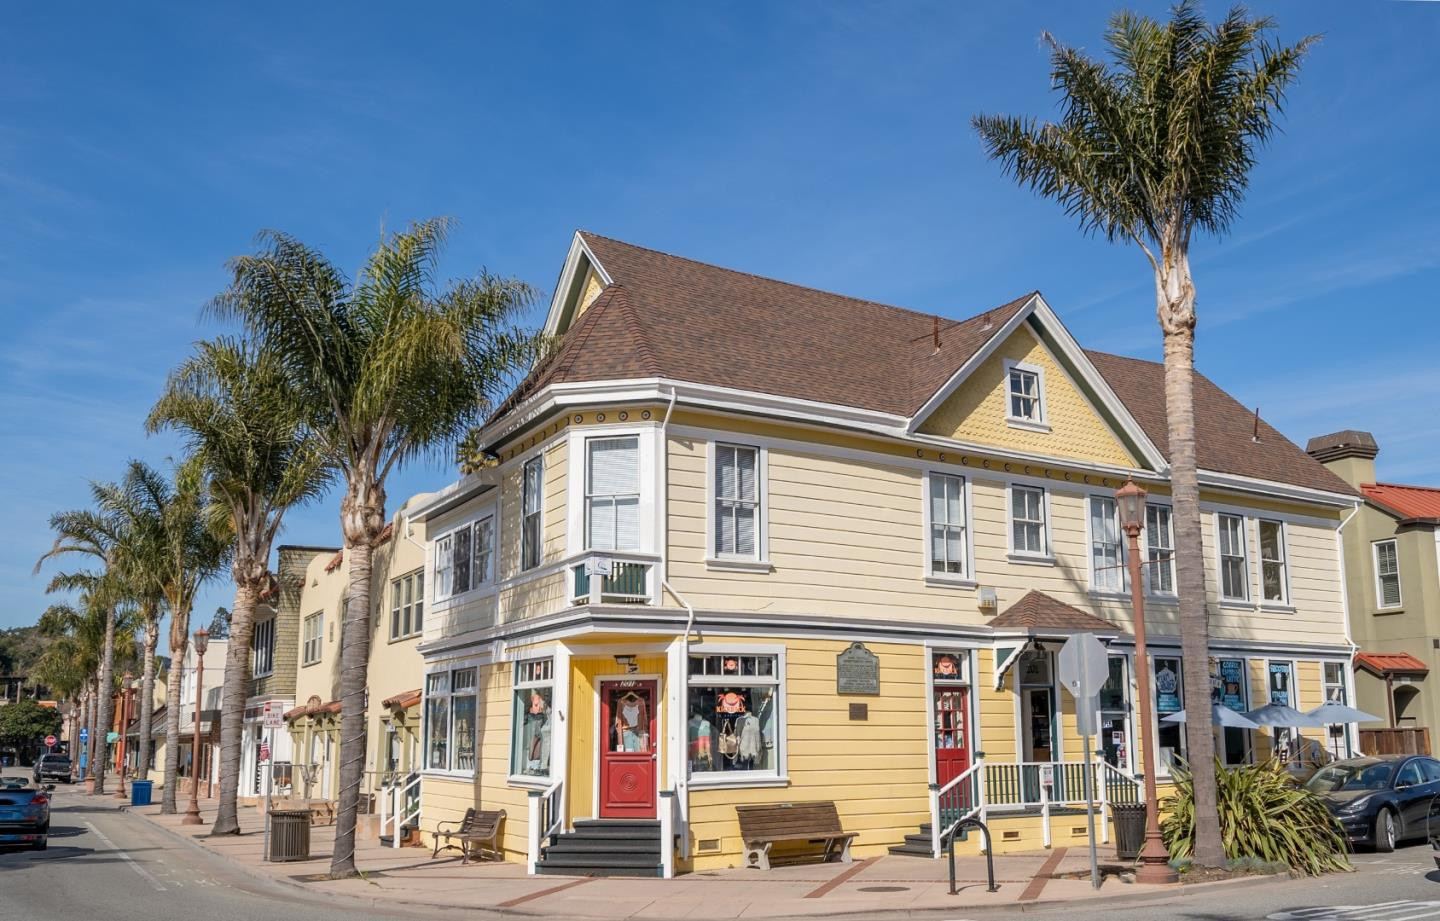 Opportunity to own a piece of Capitola history in a prime corner location in the heart of the quaint Capitola Village By the Sea. This trophy property once owned by F. A. Hihn served as the headquarters for Camp Capitola, California's first seaside resort community, until 1930. Restored in the 1970's and updated again in 2018, it has the prestigious designation as being marked a California Historic Landmark. The beautiful architecture & freshly painted exterior stands out and brings attention to 3 commercial spaces, currently 2 retail stores & a deli with 2 half baths. On the 2nd floor set above the street are 2 one-bedroom apartments recently renovated with new kitchens, baths, & flooring; one offers great ocean views. Set in the vacation rental zone offering flexibility for long or short term rentals. On the top level is a large attic space with high ceilings & half bath. Arguably one of the best locations in Santa Cruz County only steps to the beach.